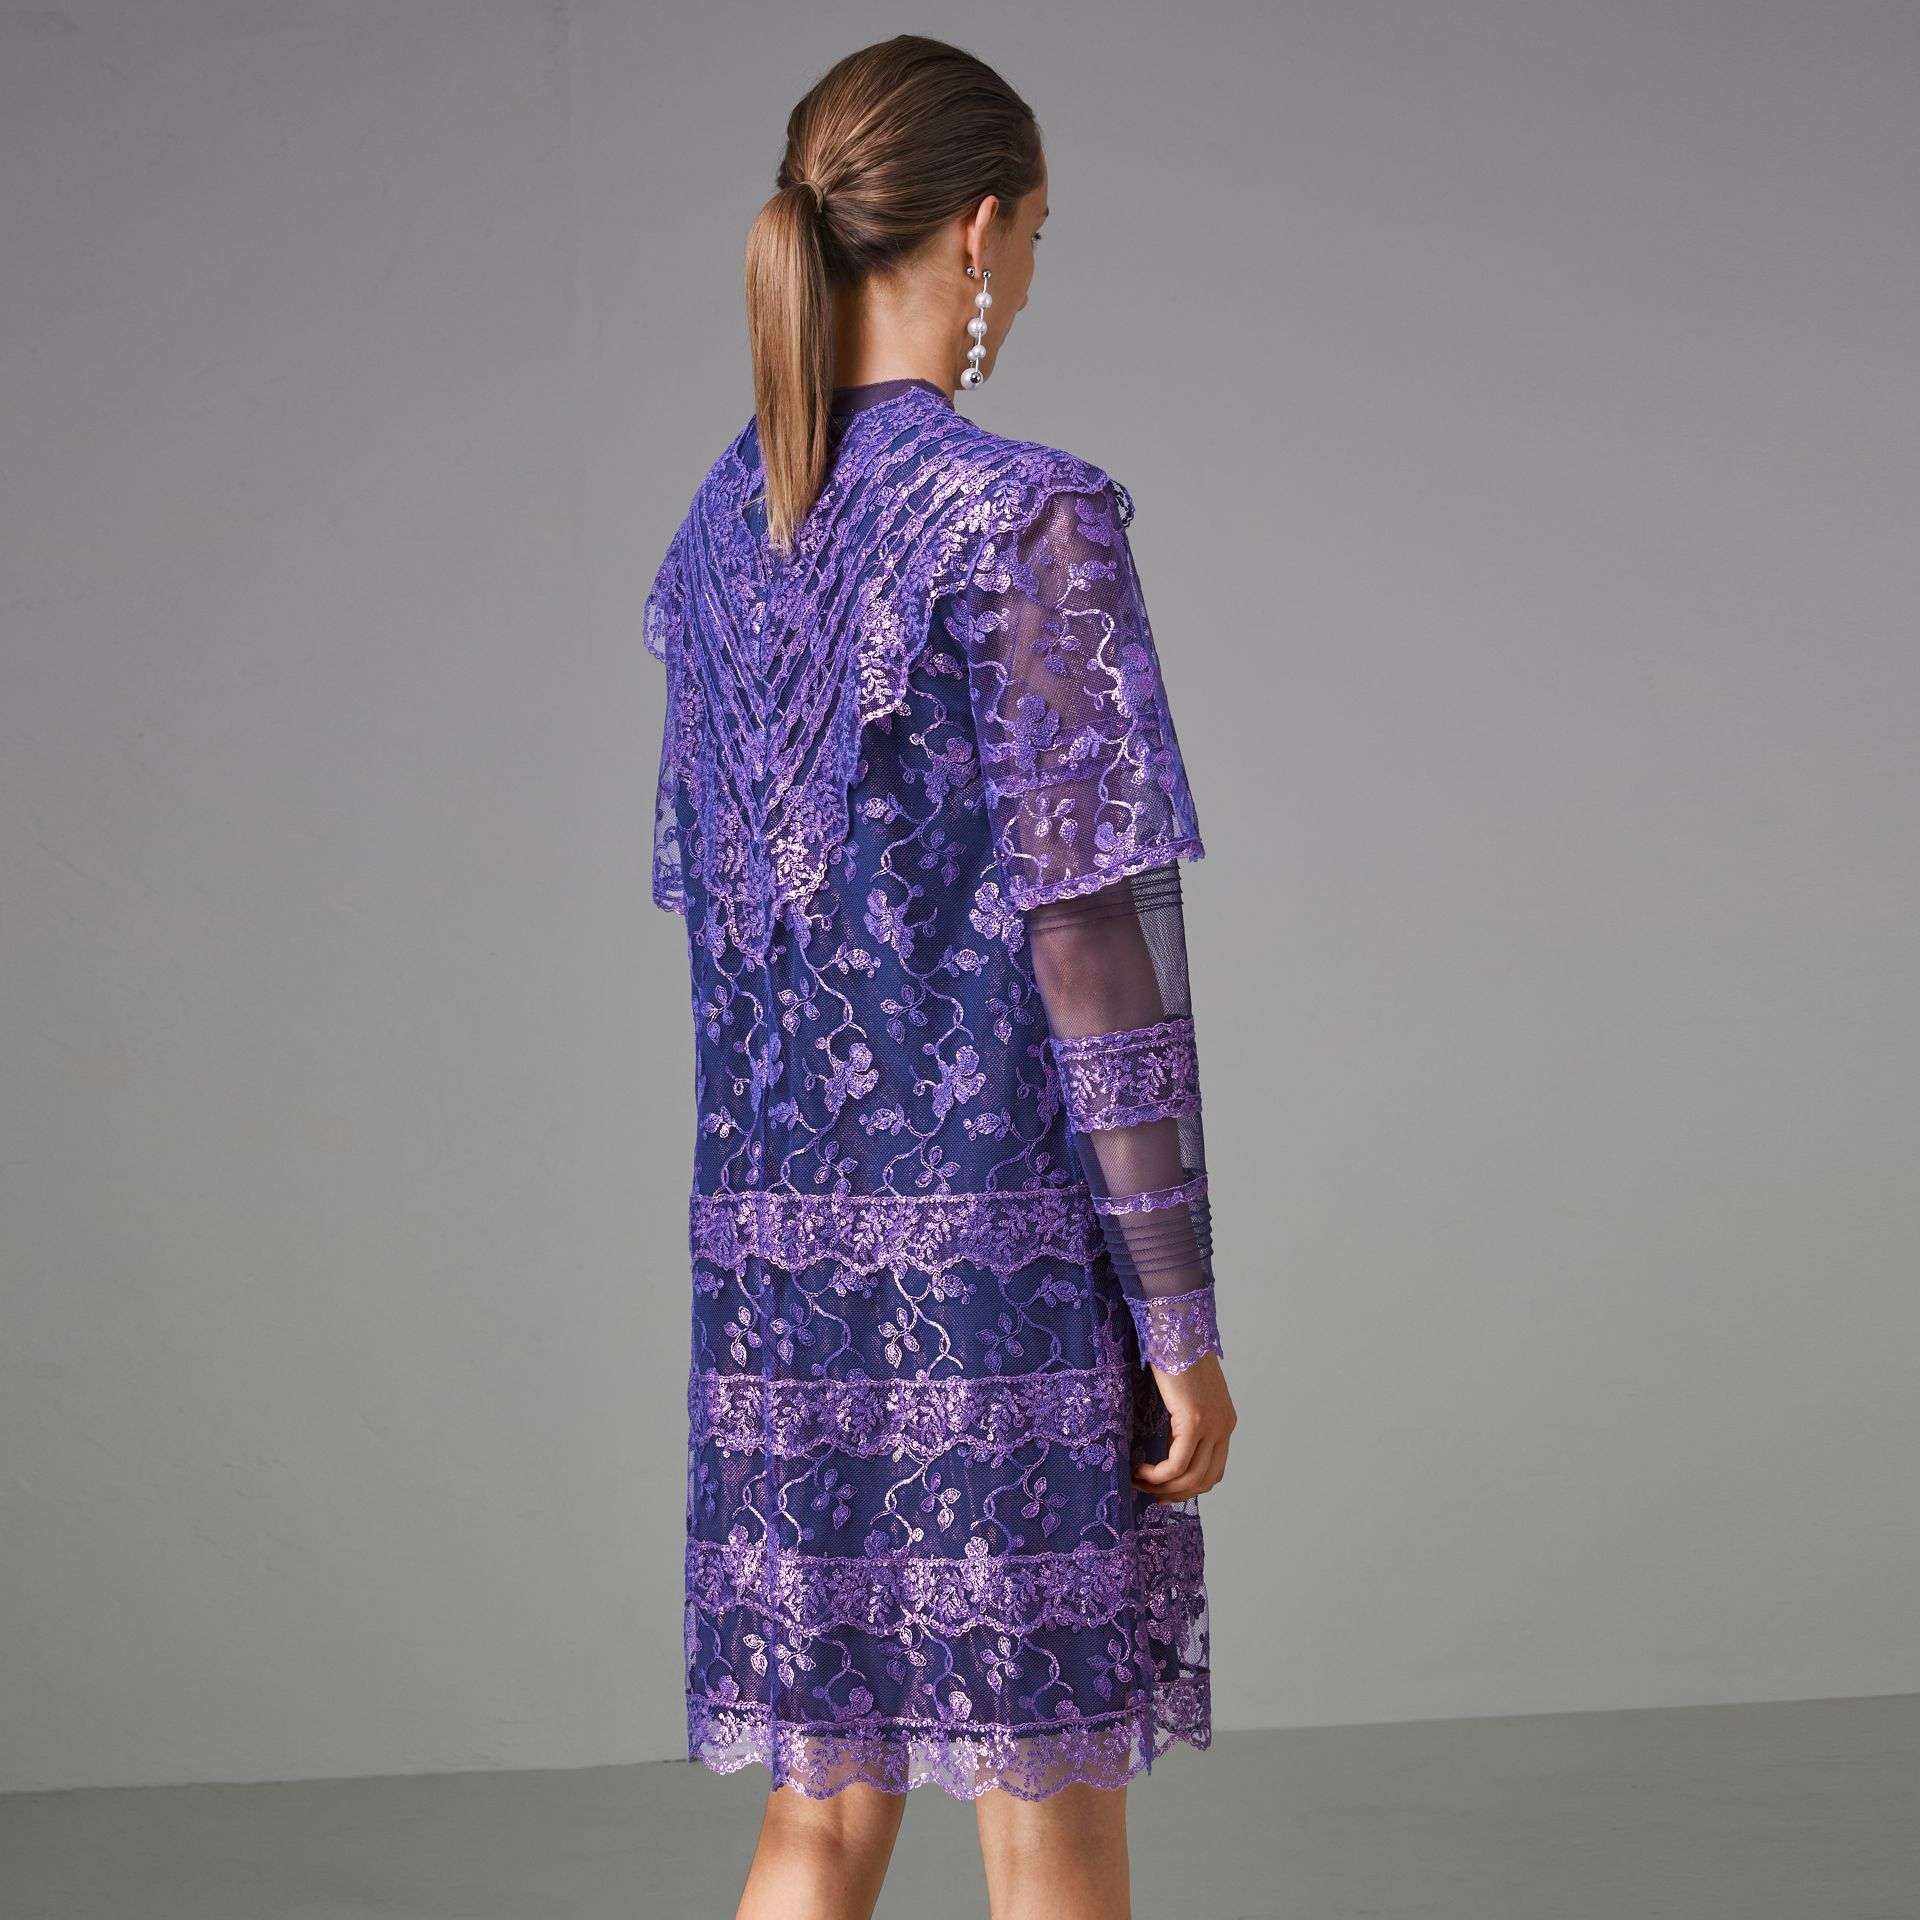 Laminated Lace Cape Sleeve Dress in Bright Purple - Women | Burberry - gallery image 2